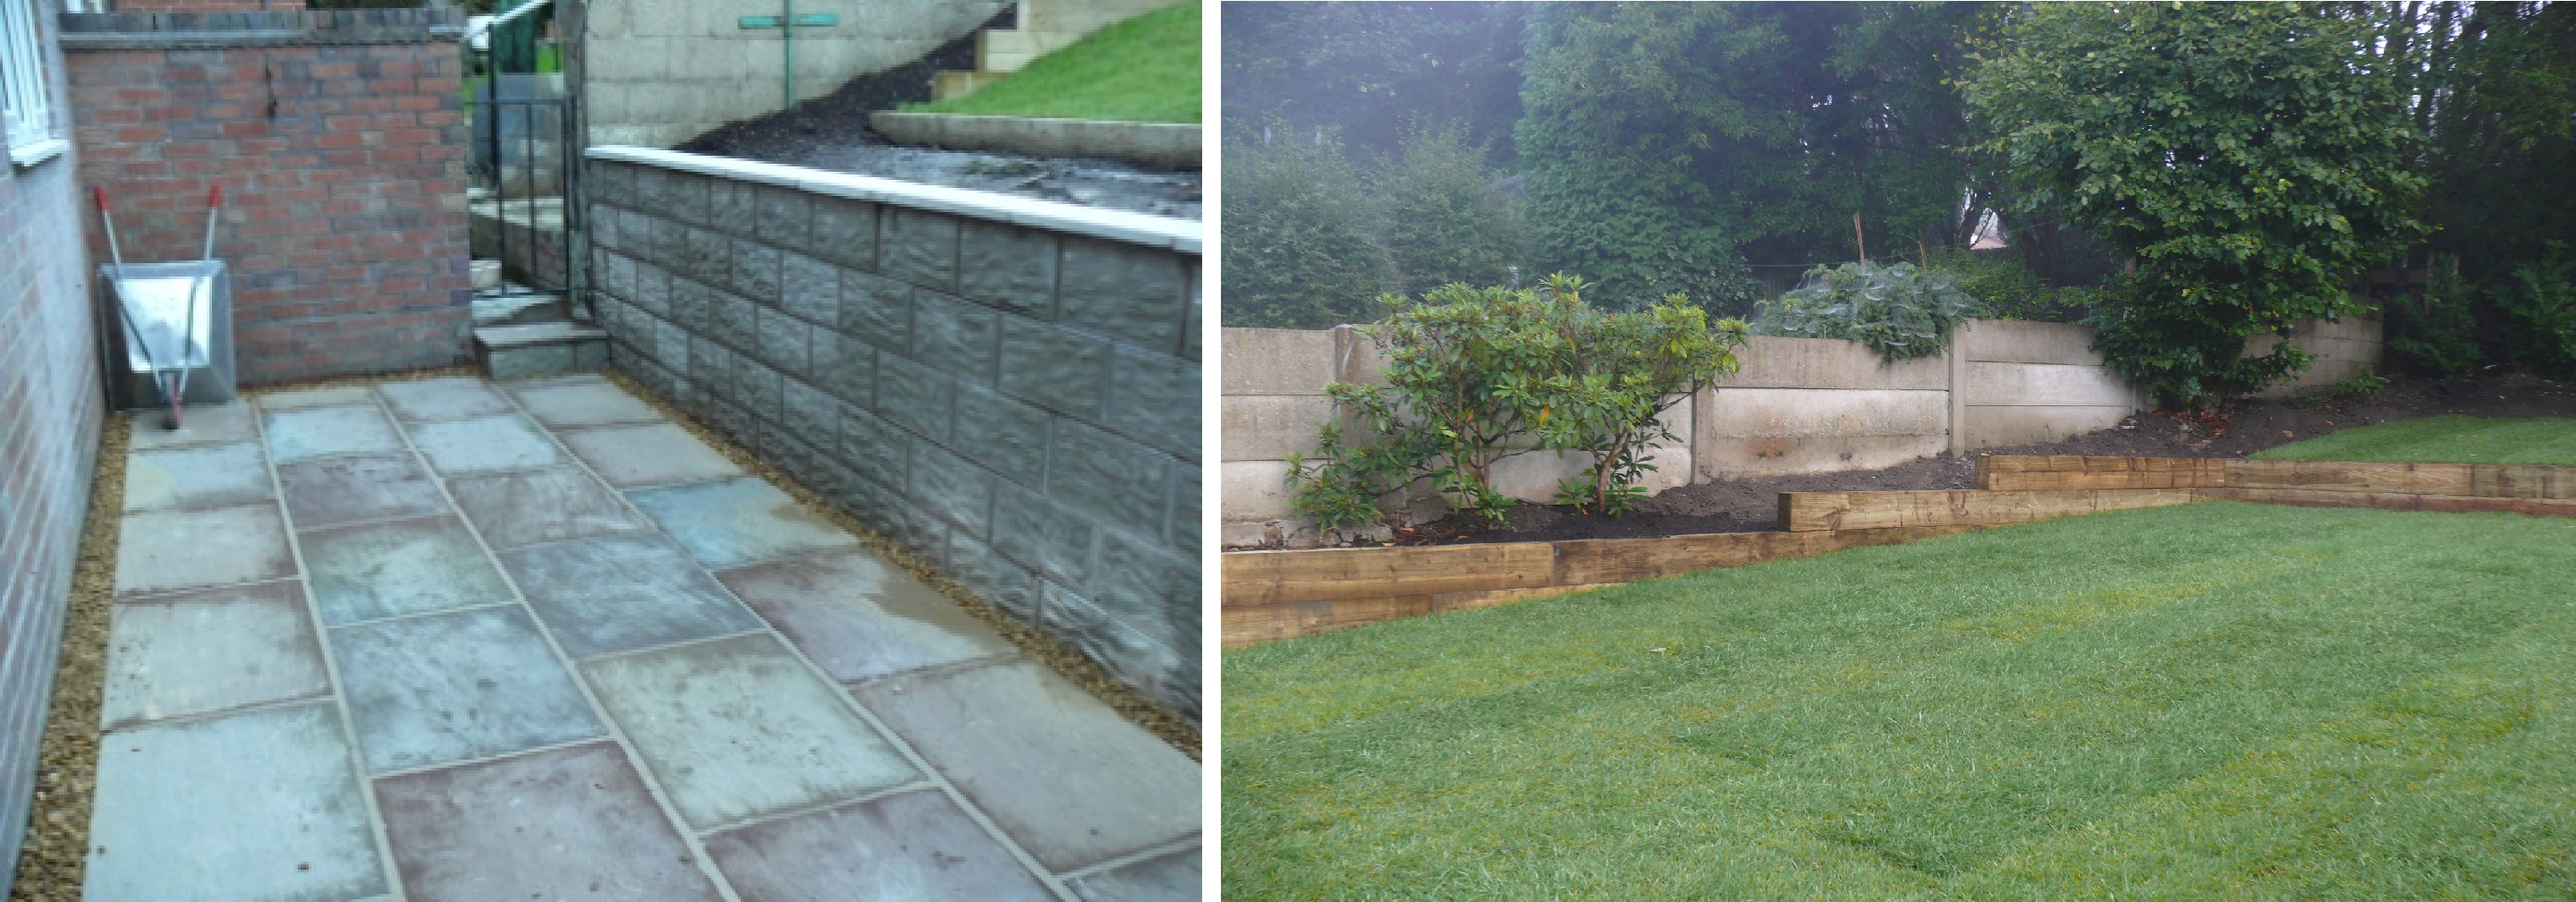 Landscaping in Longton, Staffordshire